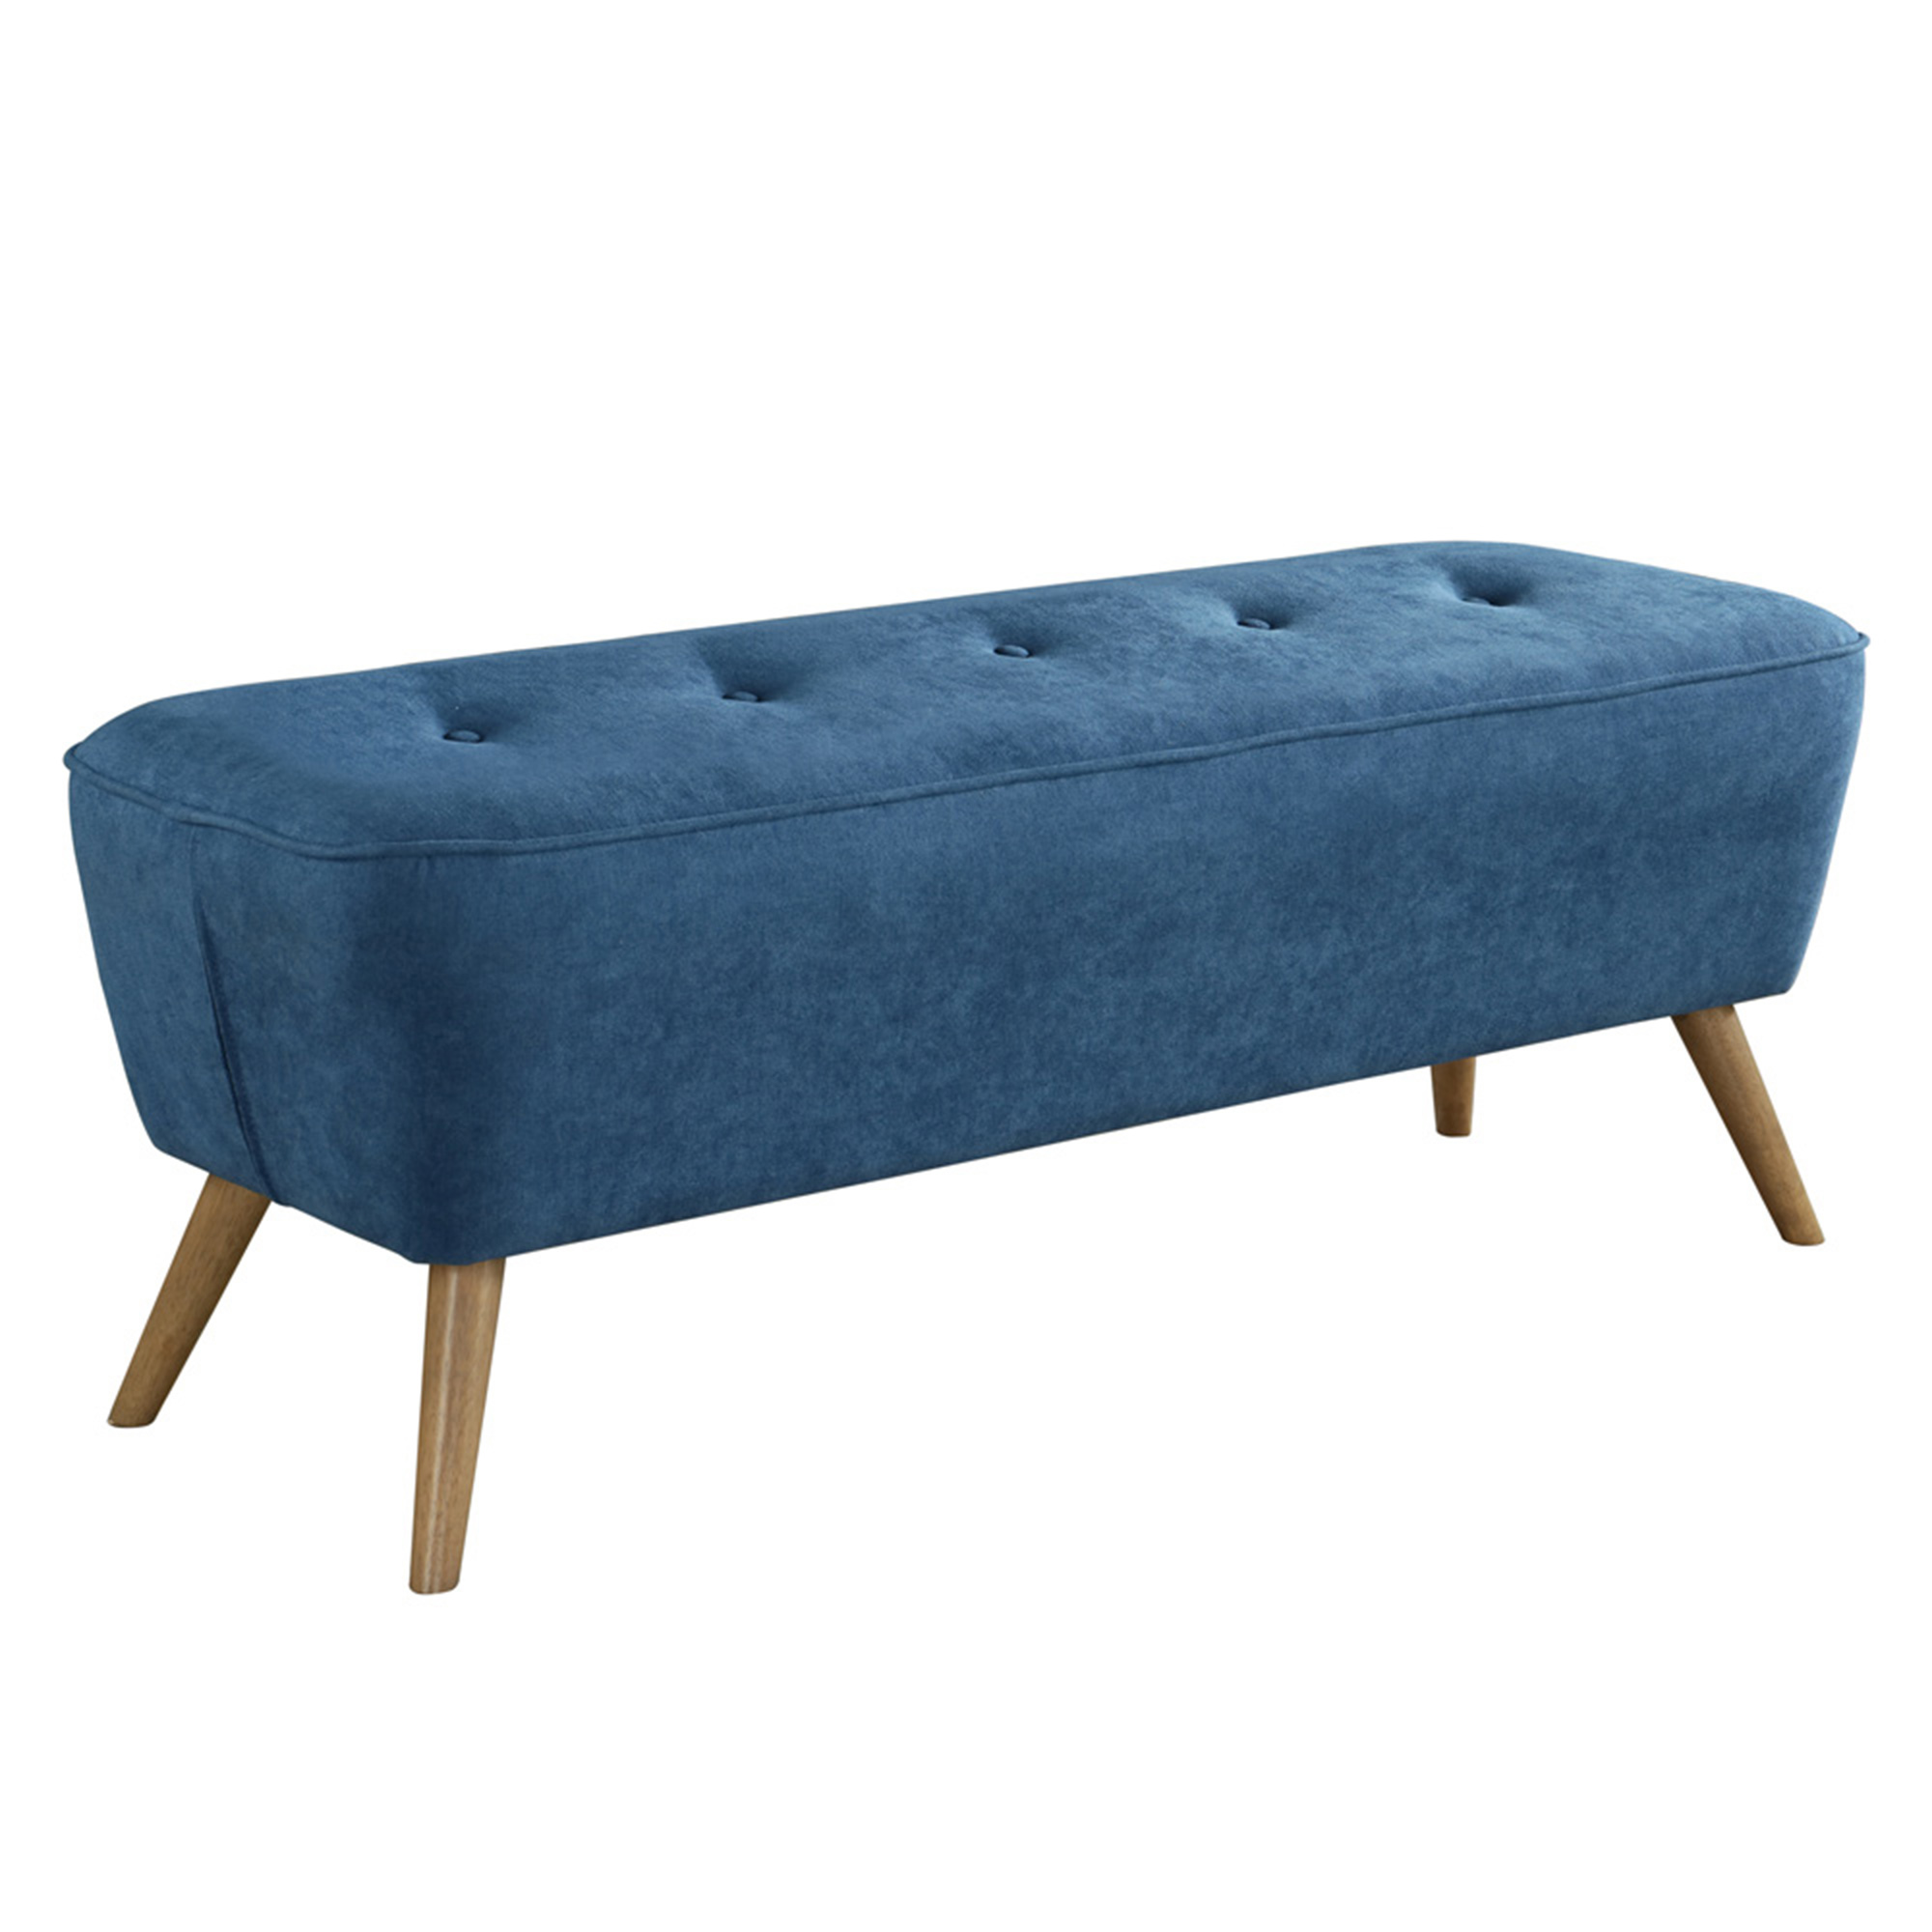 Mid-Century Fabric Bench/Ottoman in Blue